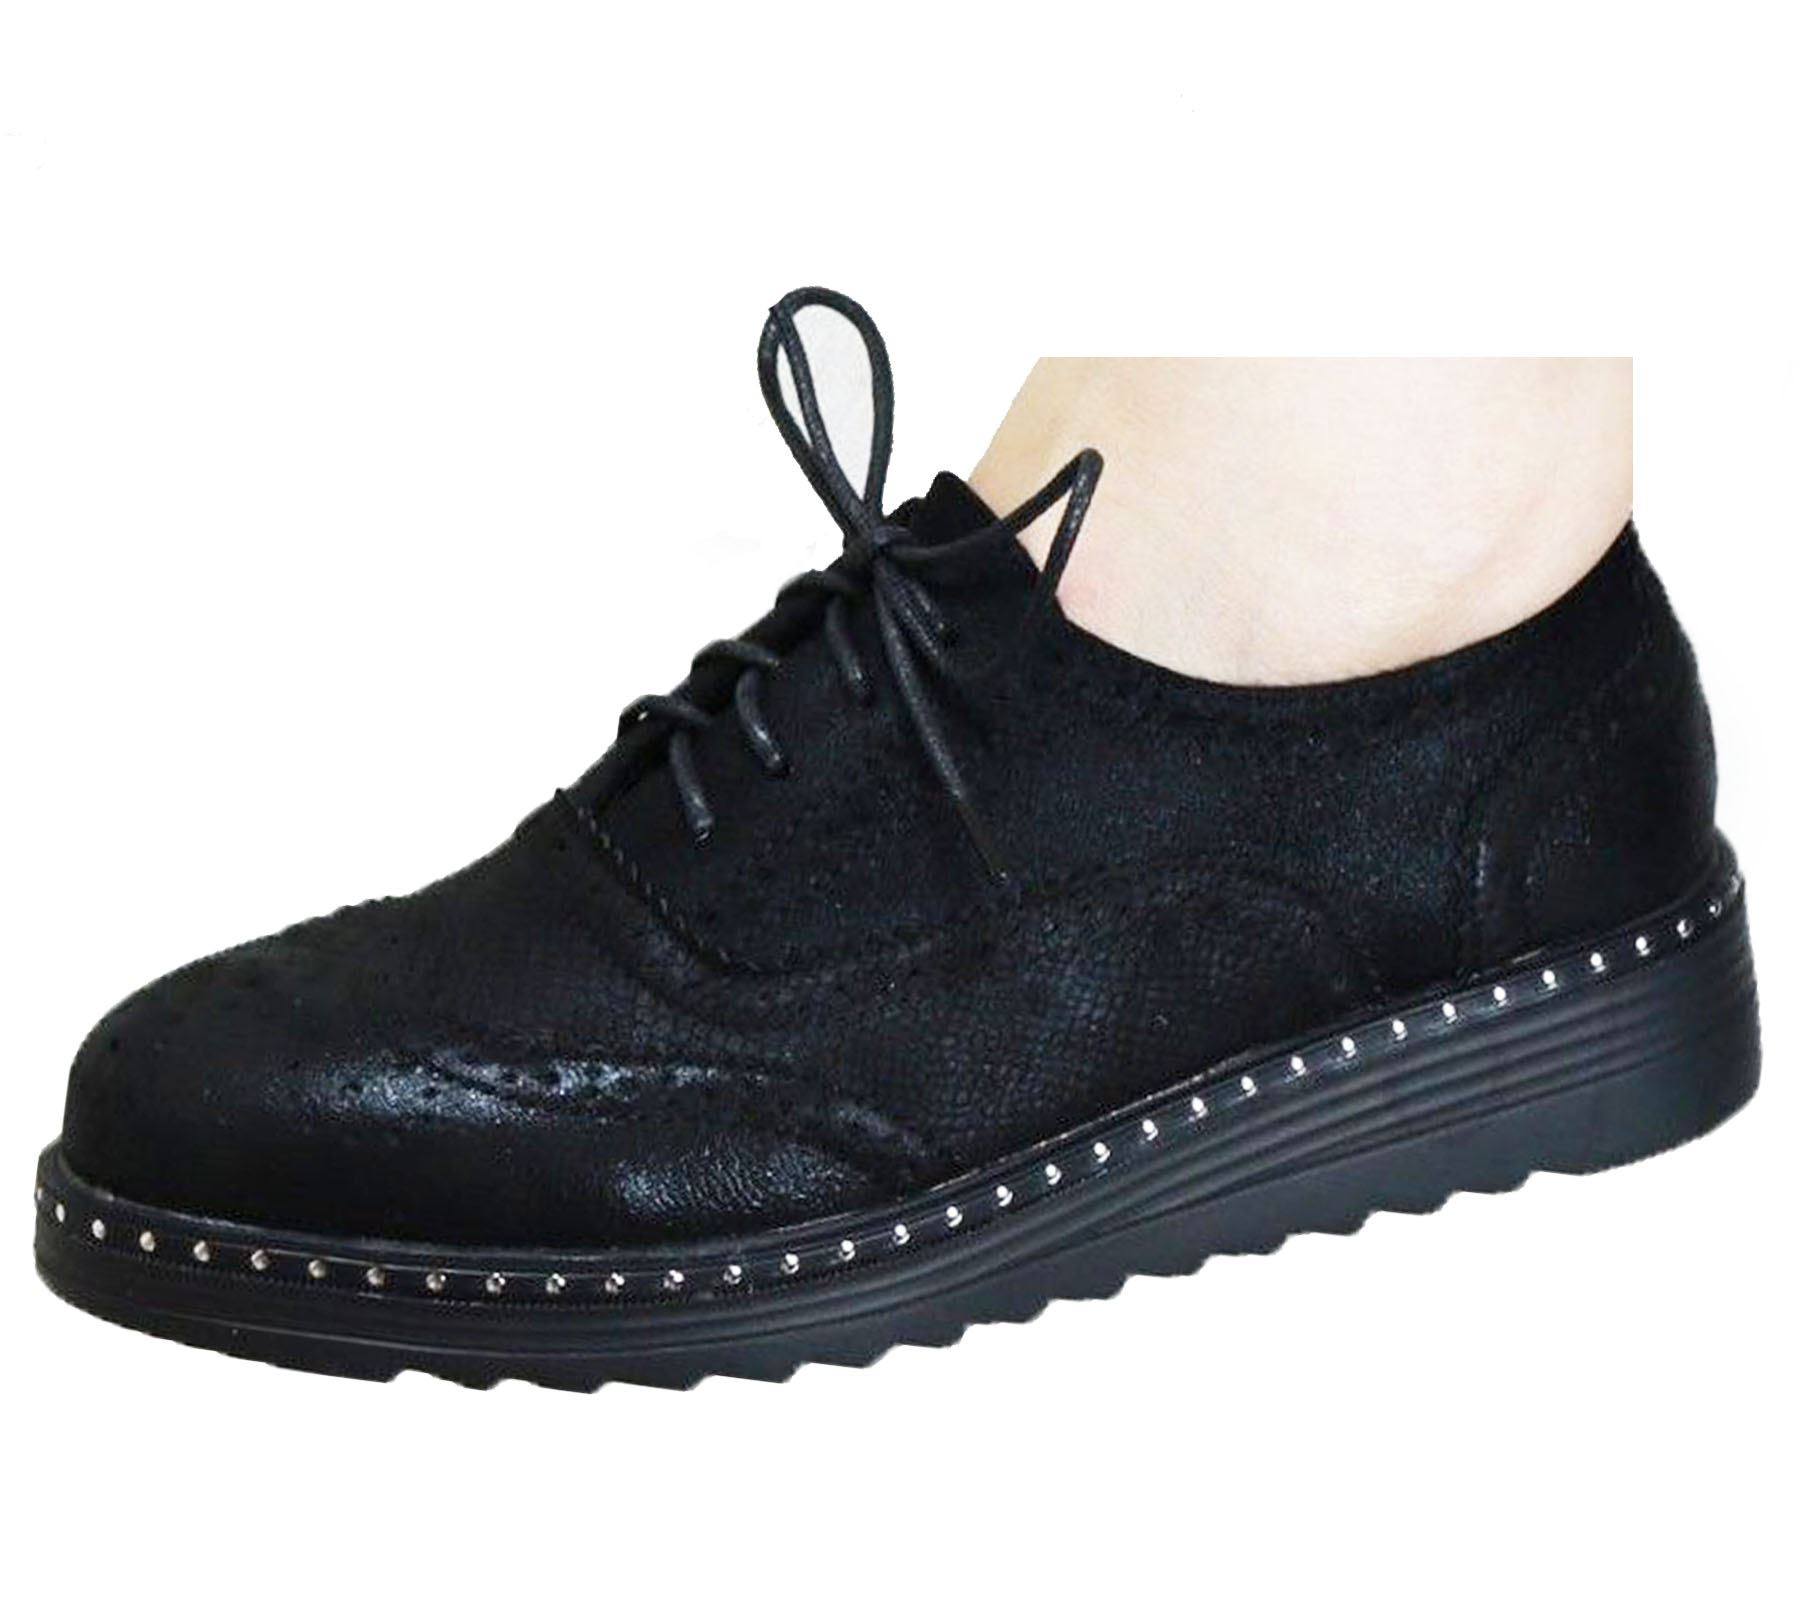 Ladies-Brogue-Lace-Up-Shoes-Womens-Oxford-Smart-Office-Loafers-Shoes miniatura 7